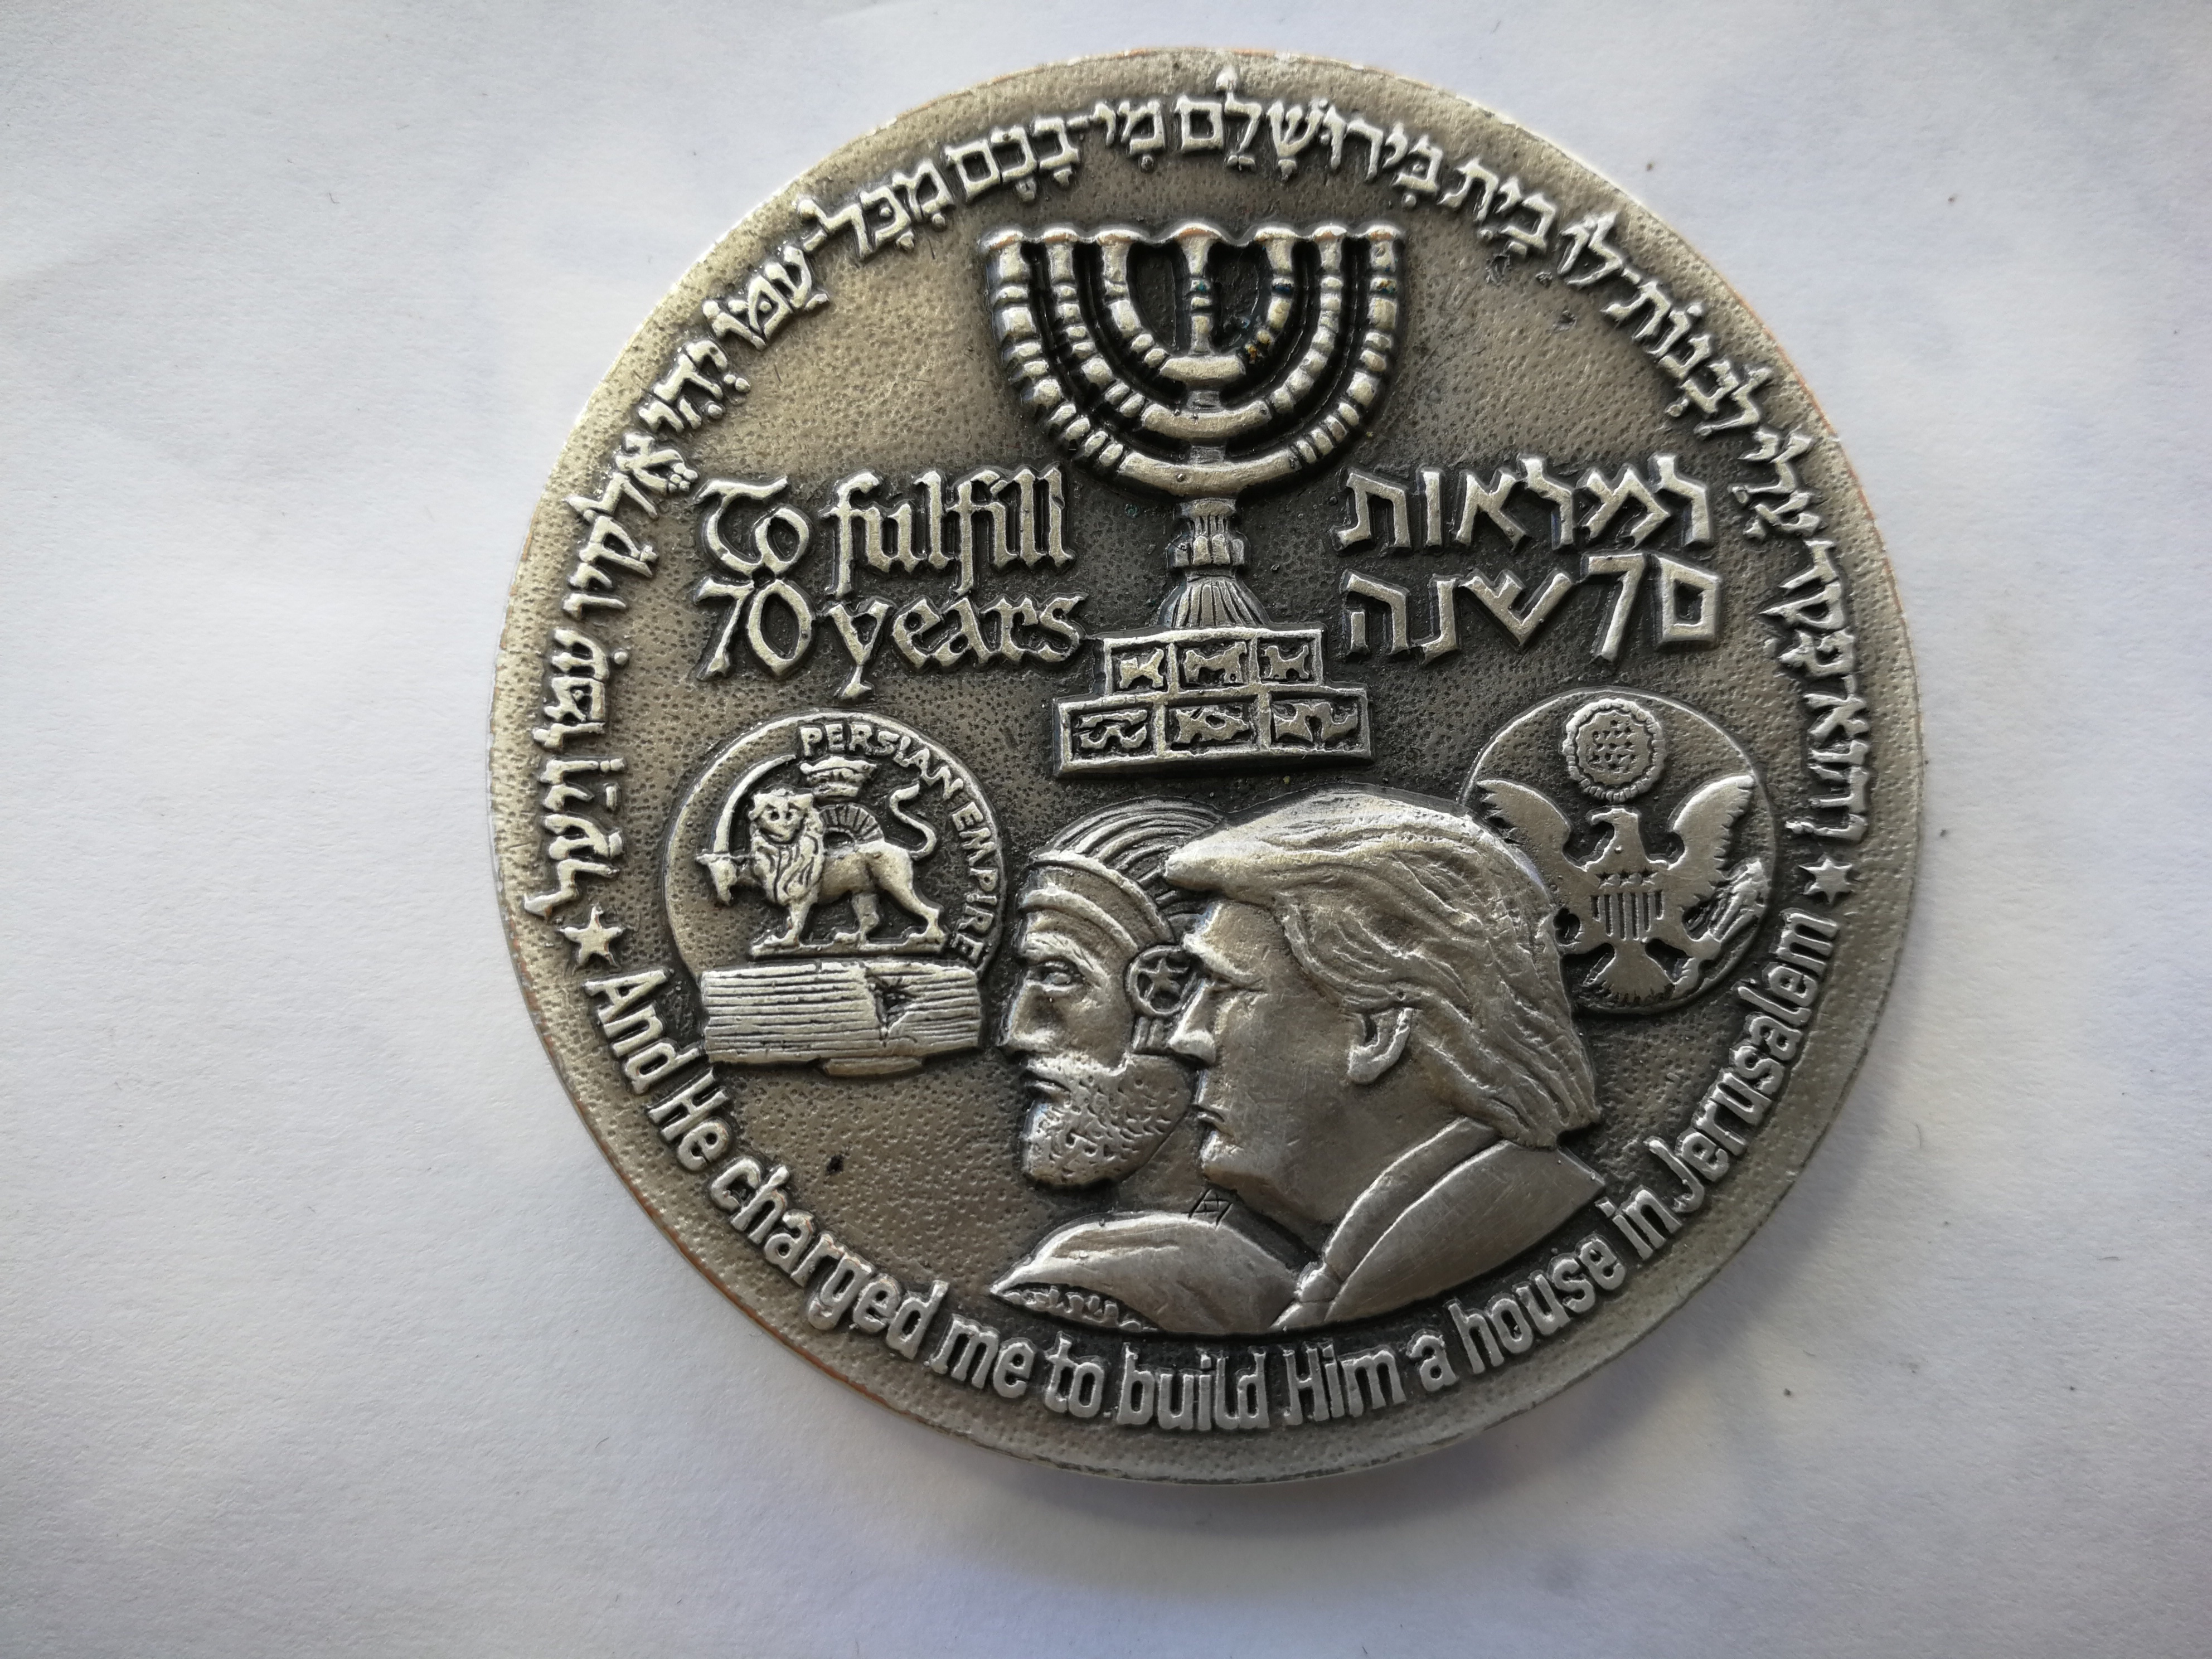 The 70 Years Israel Redemption - Temple Coin silver plated 0008